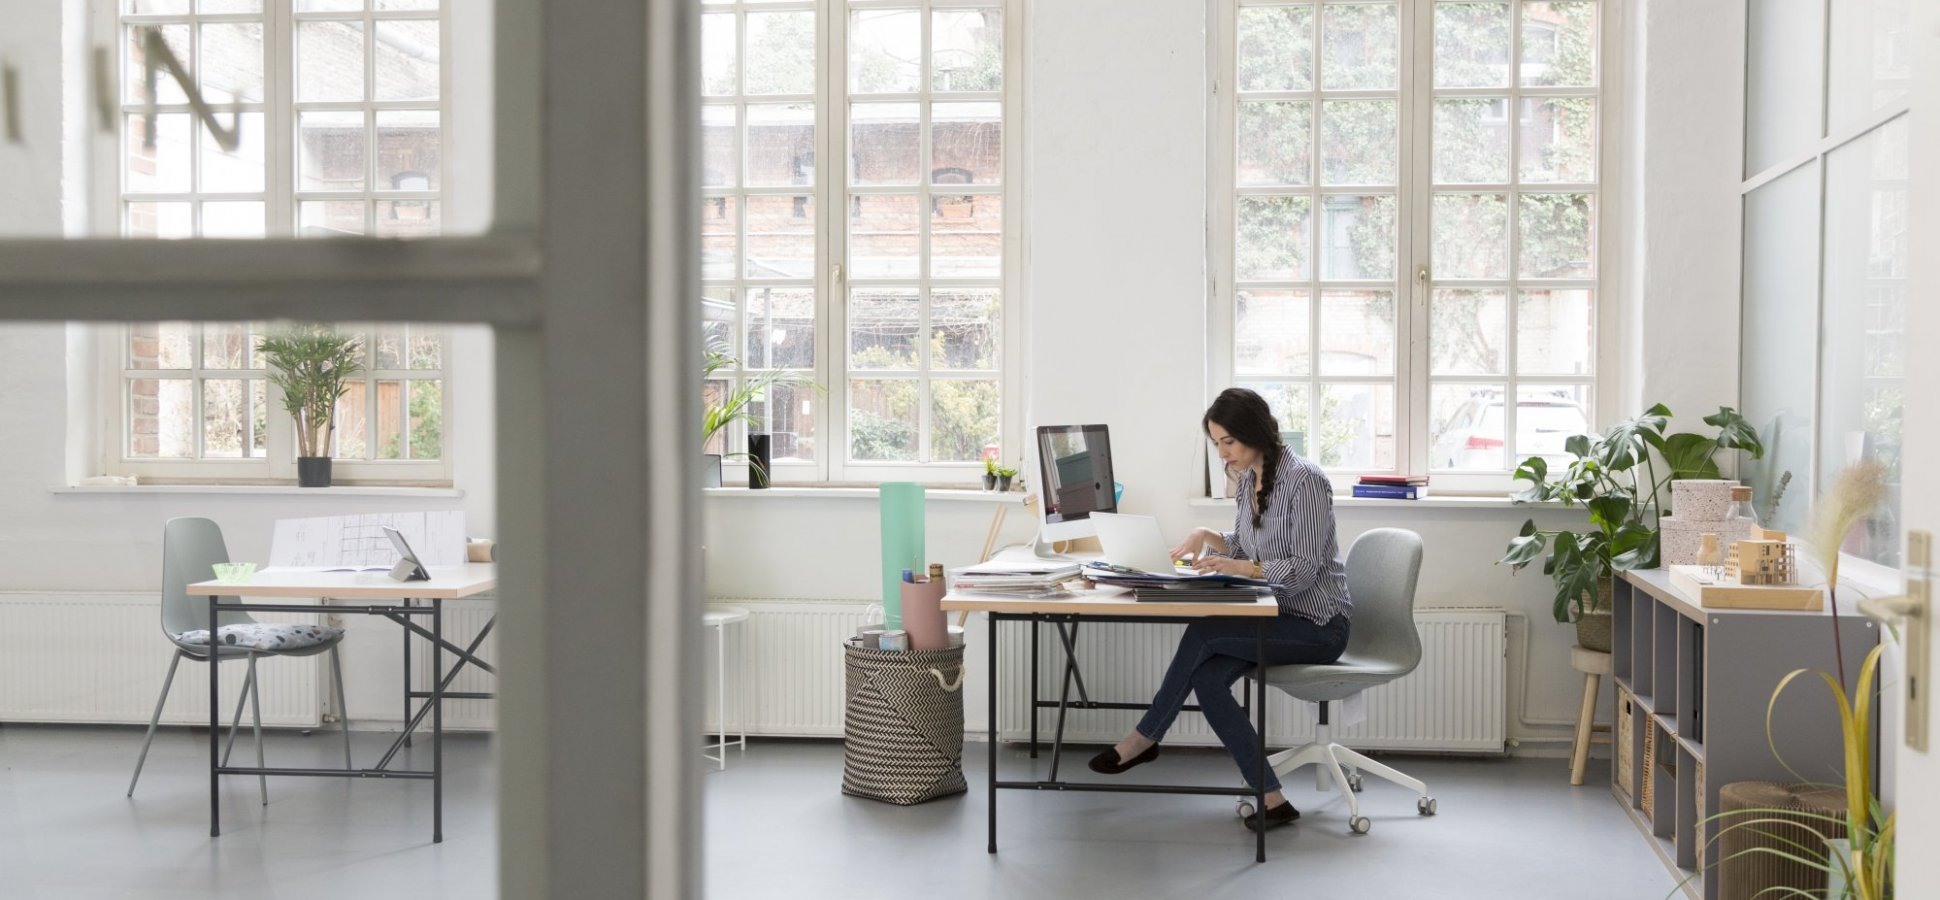 Want Your New Hire to Succeed? Here's Why You Should Leave Them Alone